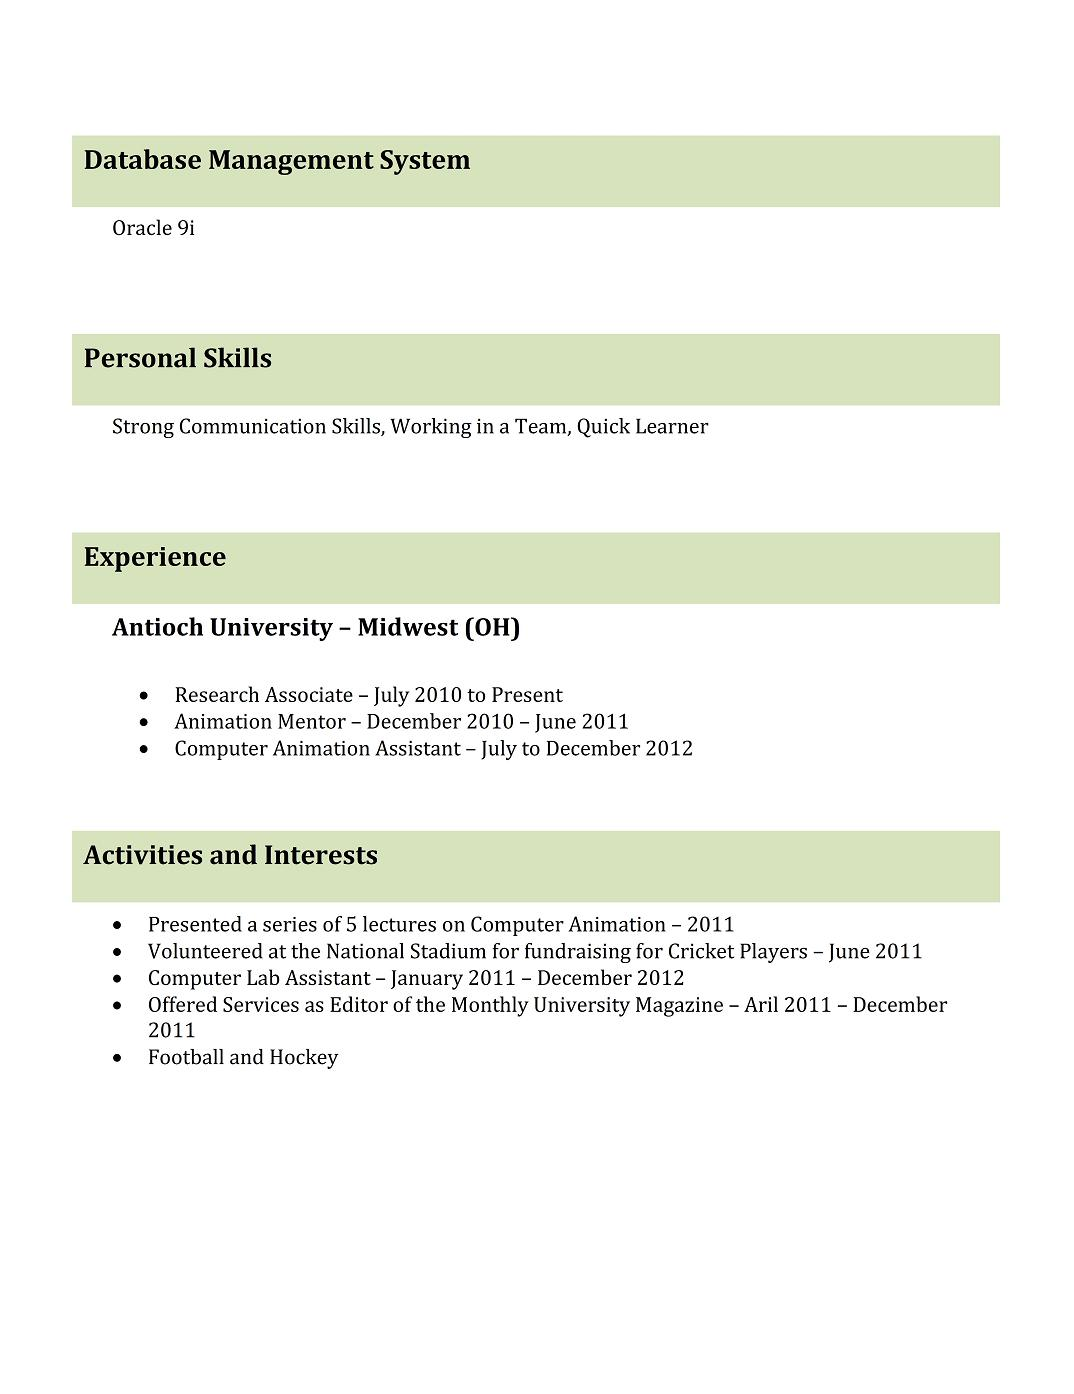 freshers resume format best professional resume templates select from great fonts including calibri and arial and make sure you maintain the size to not less than 10 and 12 2016 curriculum vitae format